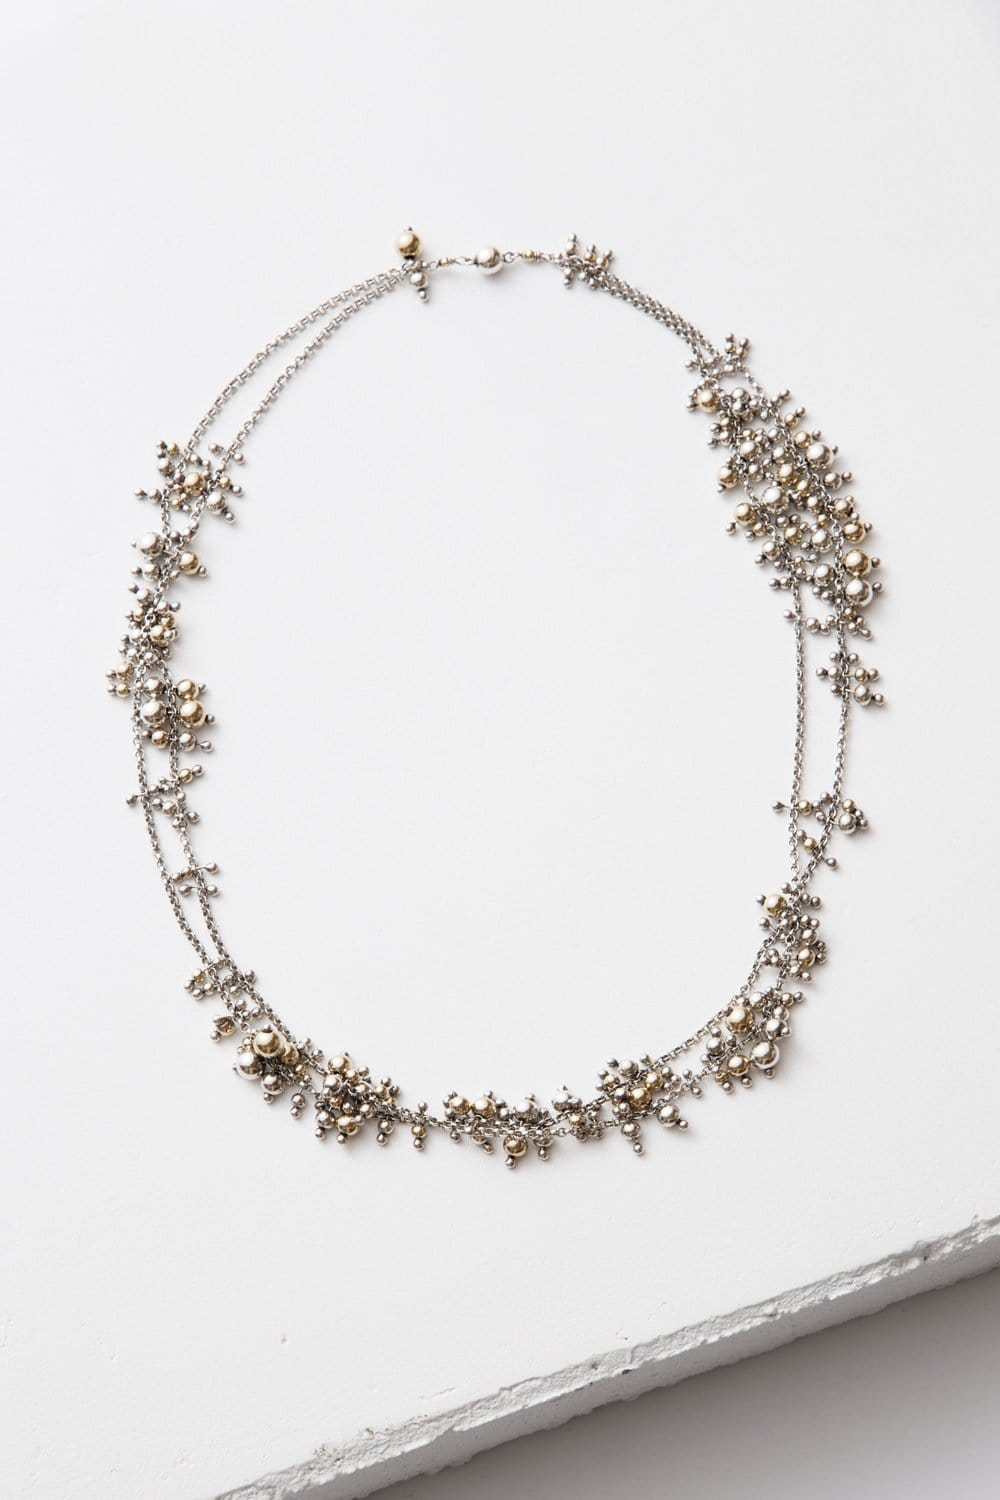 Cluster Necklace, sterling silver and 14k gold fill - The Highlight Gallery